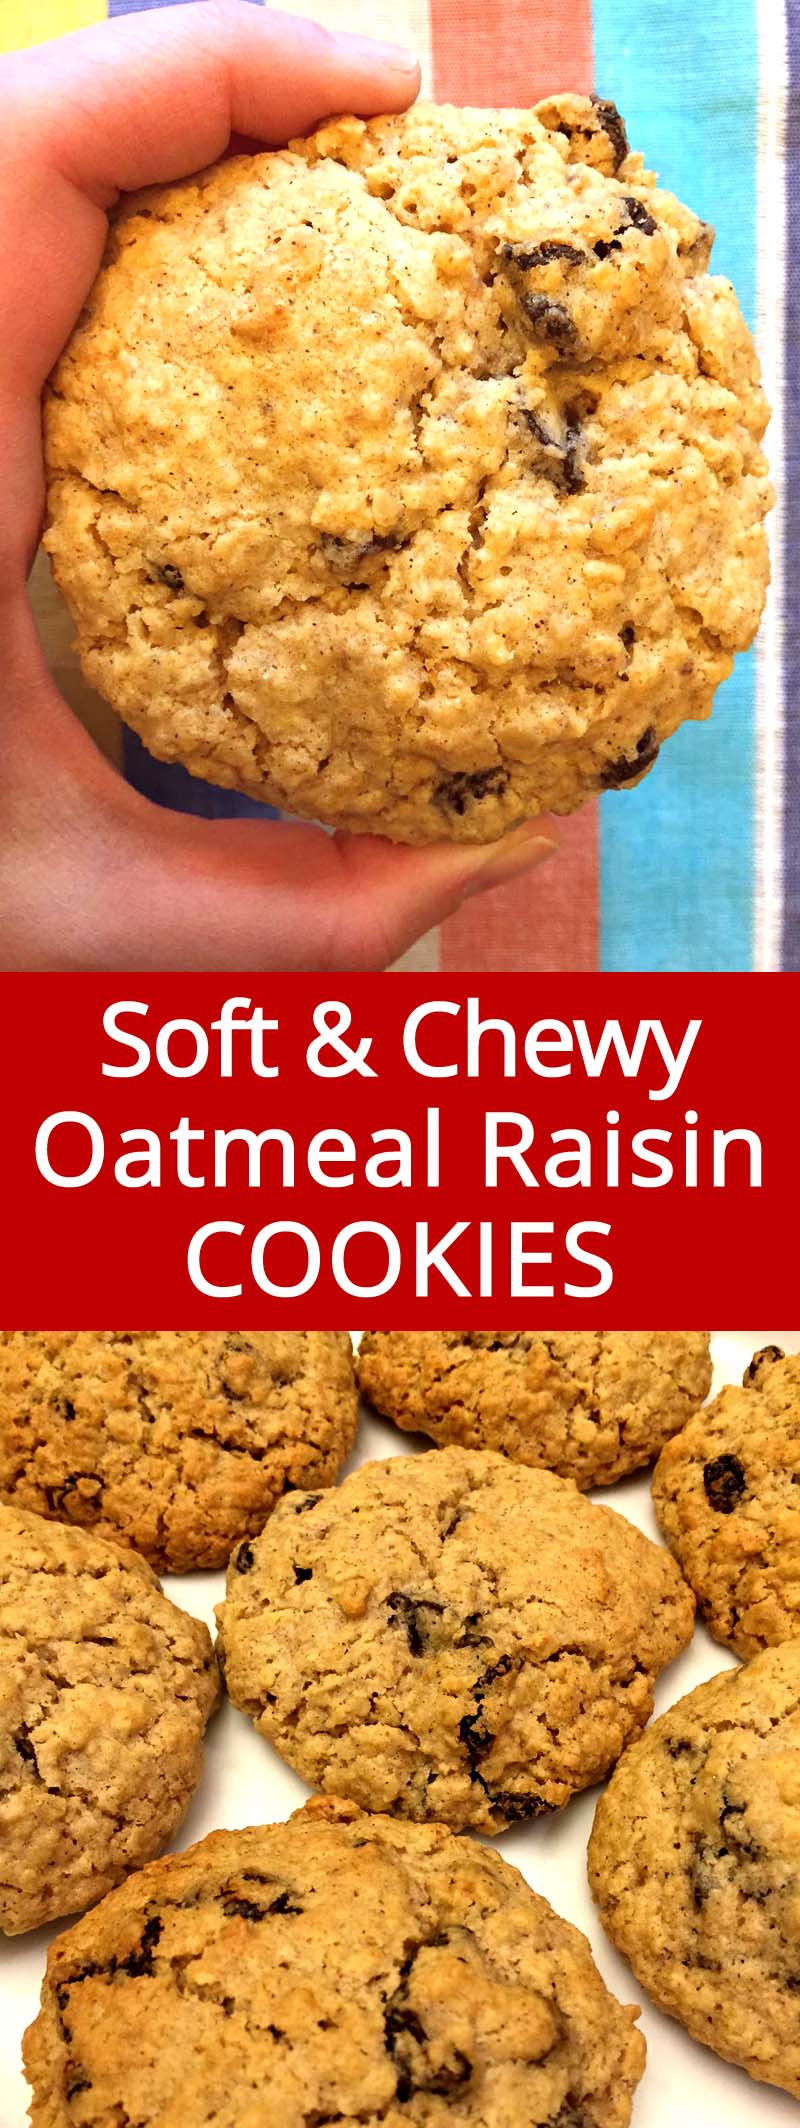 Soft Oatmeal Cookies Recipes  soft oatmeal raisin cookies